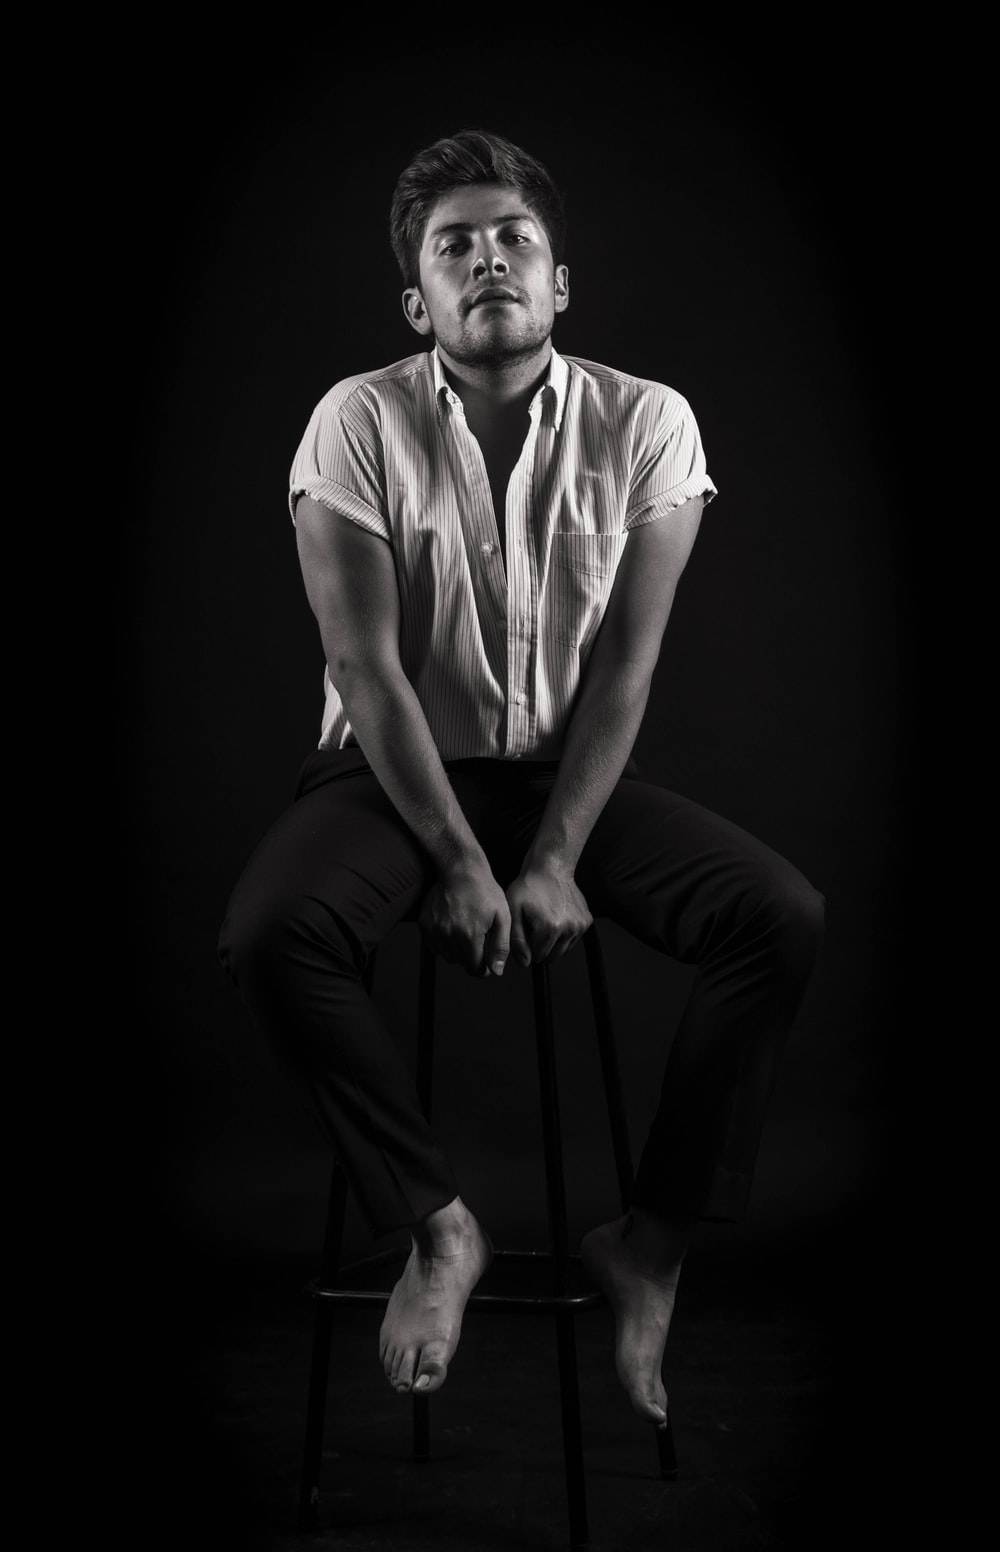 grayscale photography unknown person sitting on stool